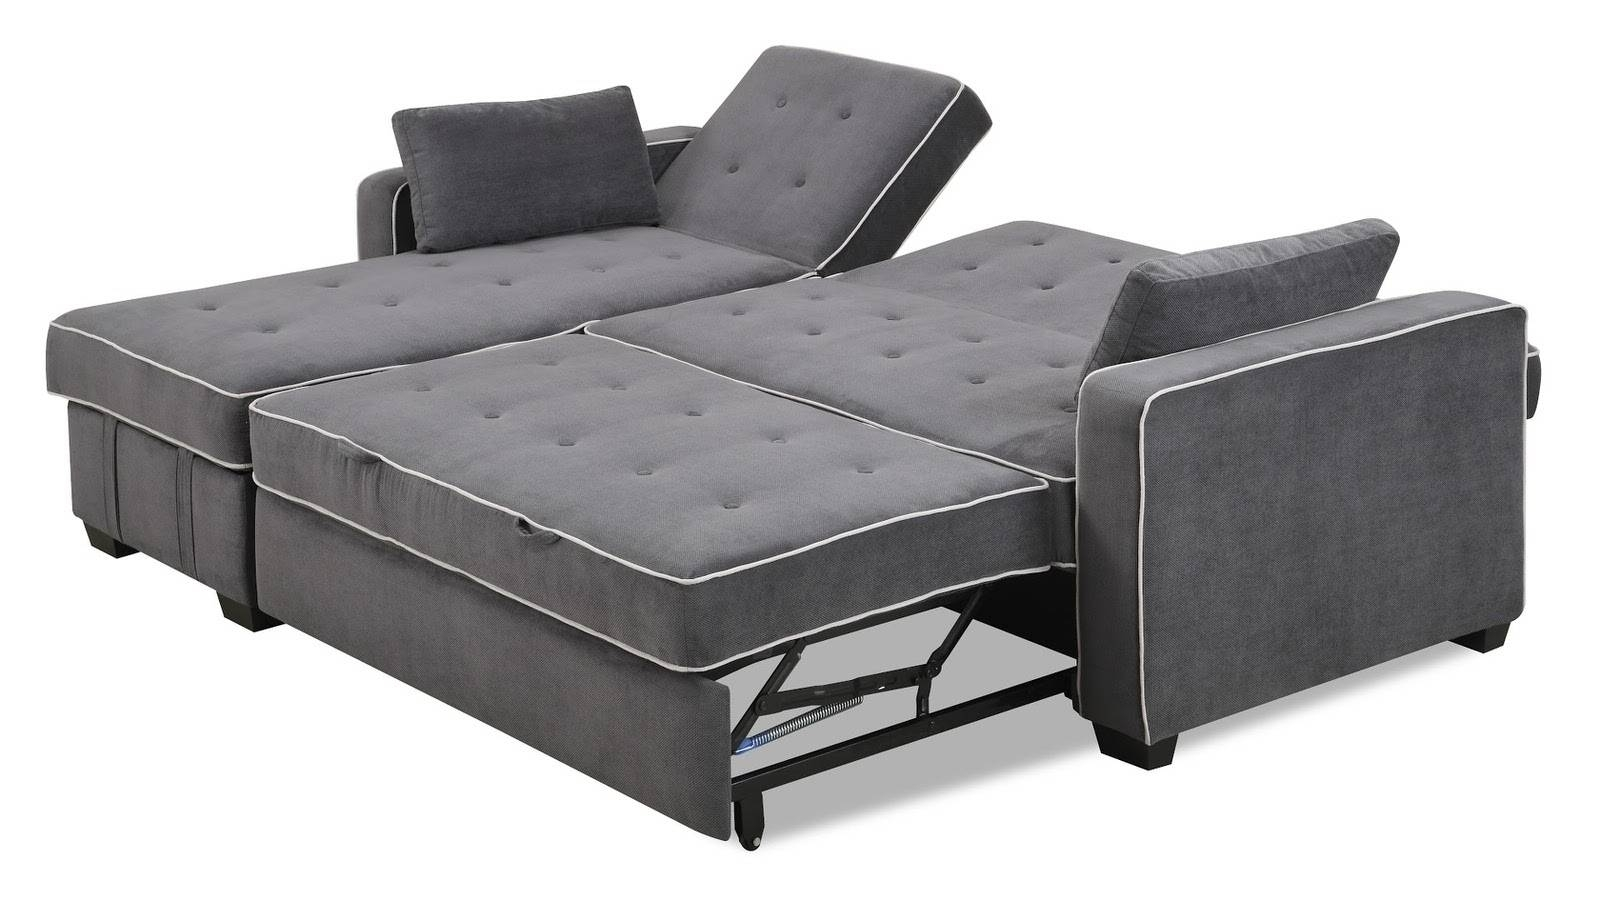 King Size Sofa Bed 25 With King Size Sofa Bed | Jinanhongyu inside King Size Sofa Beds (Image 6 of 15)